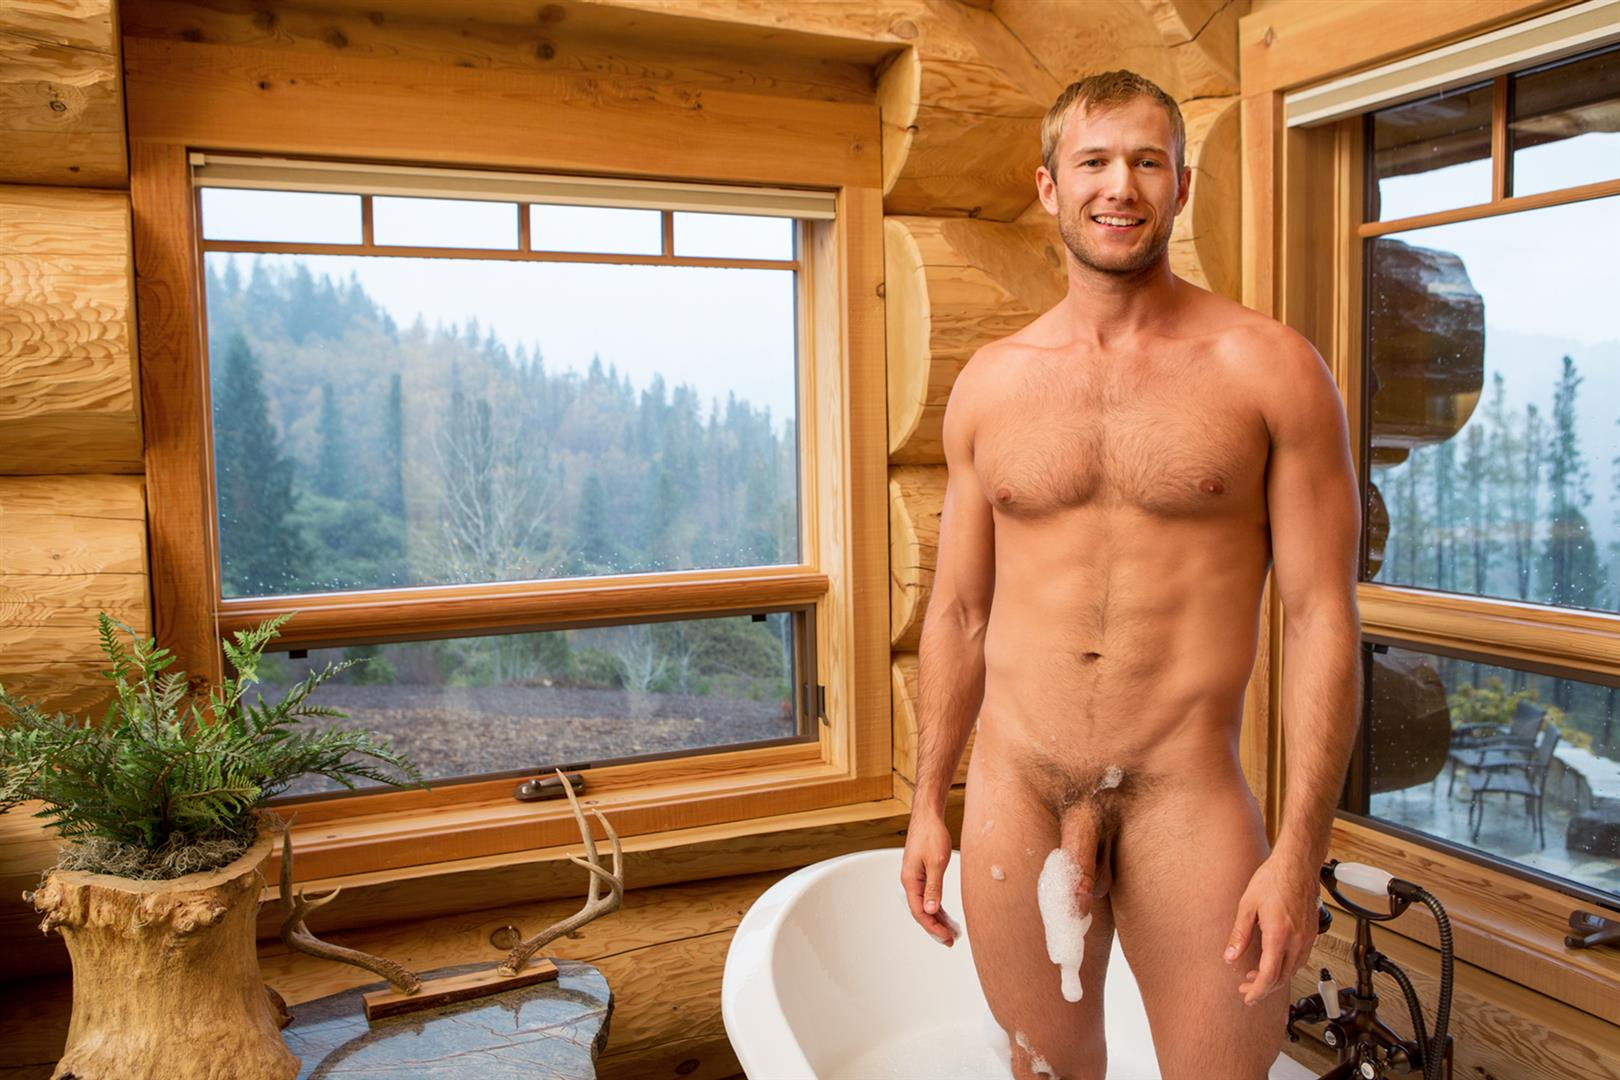 Sean-Cody-Winter-Getaway-Day-6-Big-Dick-Hunks-Fucking-Bareback-Amateur-Gay-Porn-02 Sean Cody Takes The Boys On A 8-Day Bareback Winter Getaway